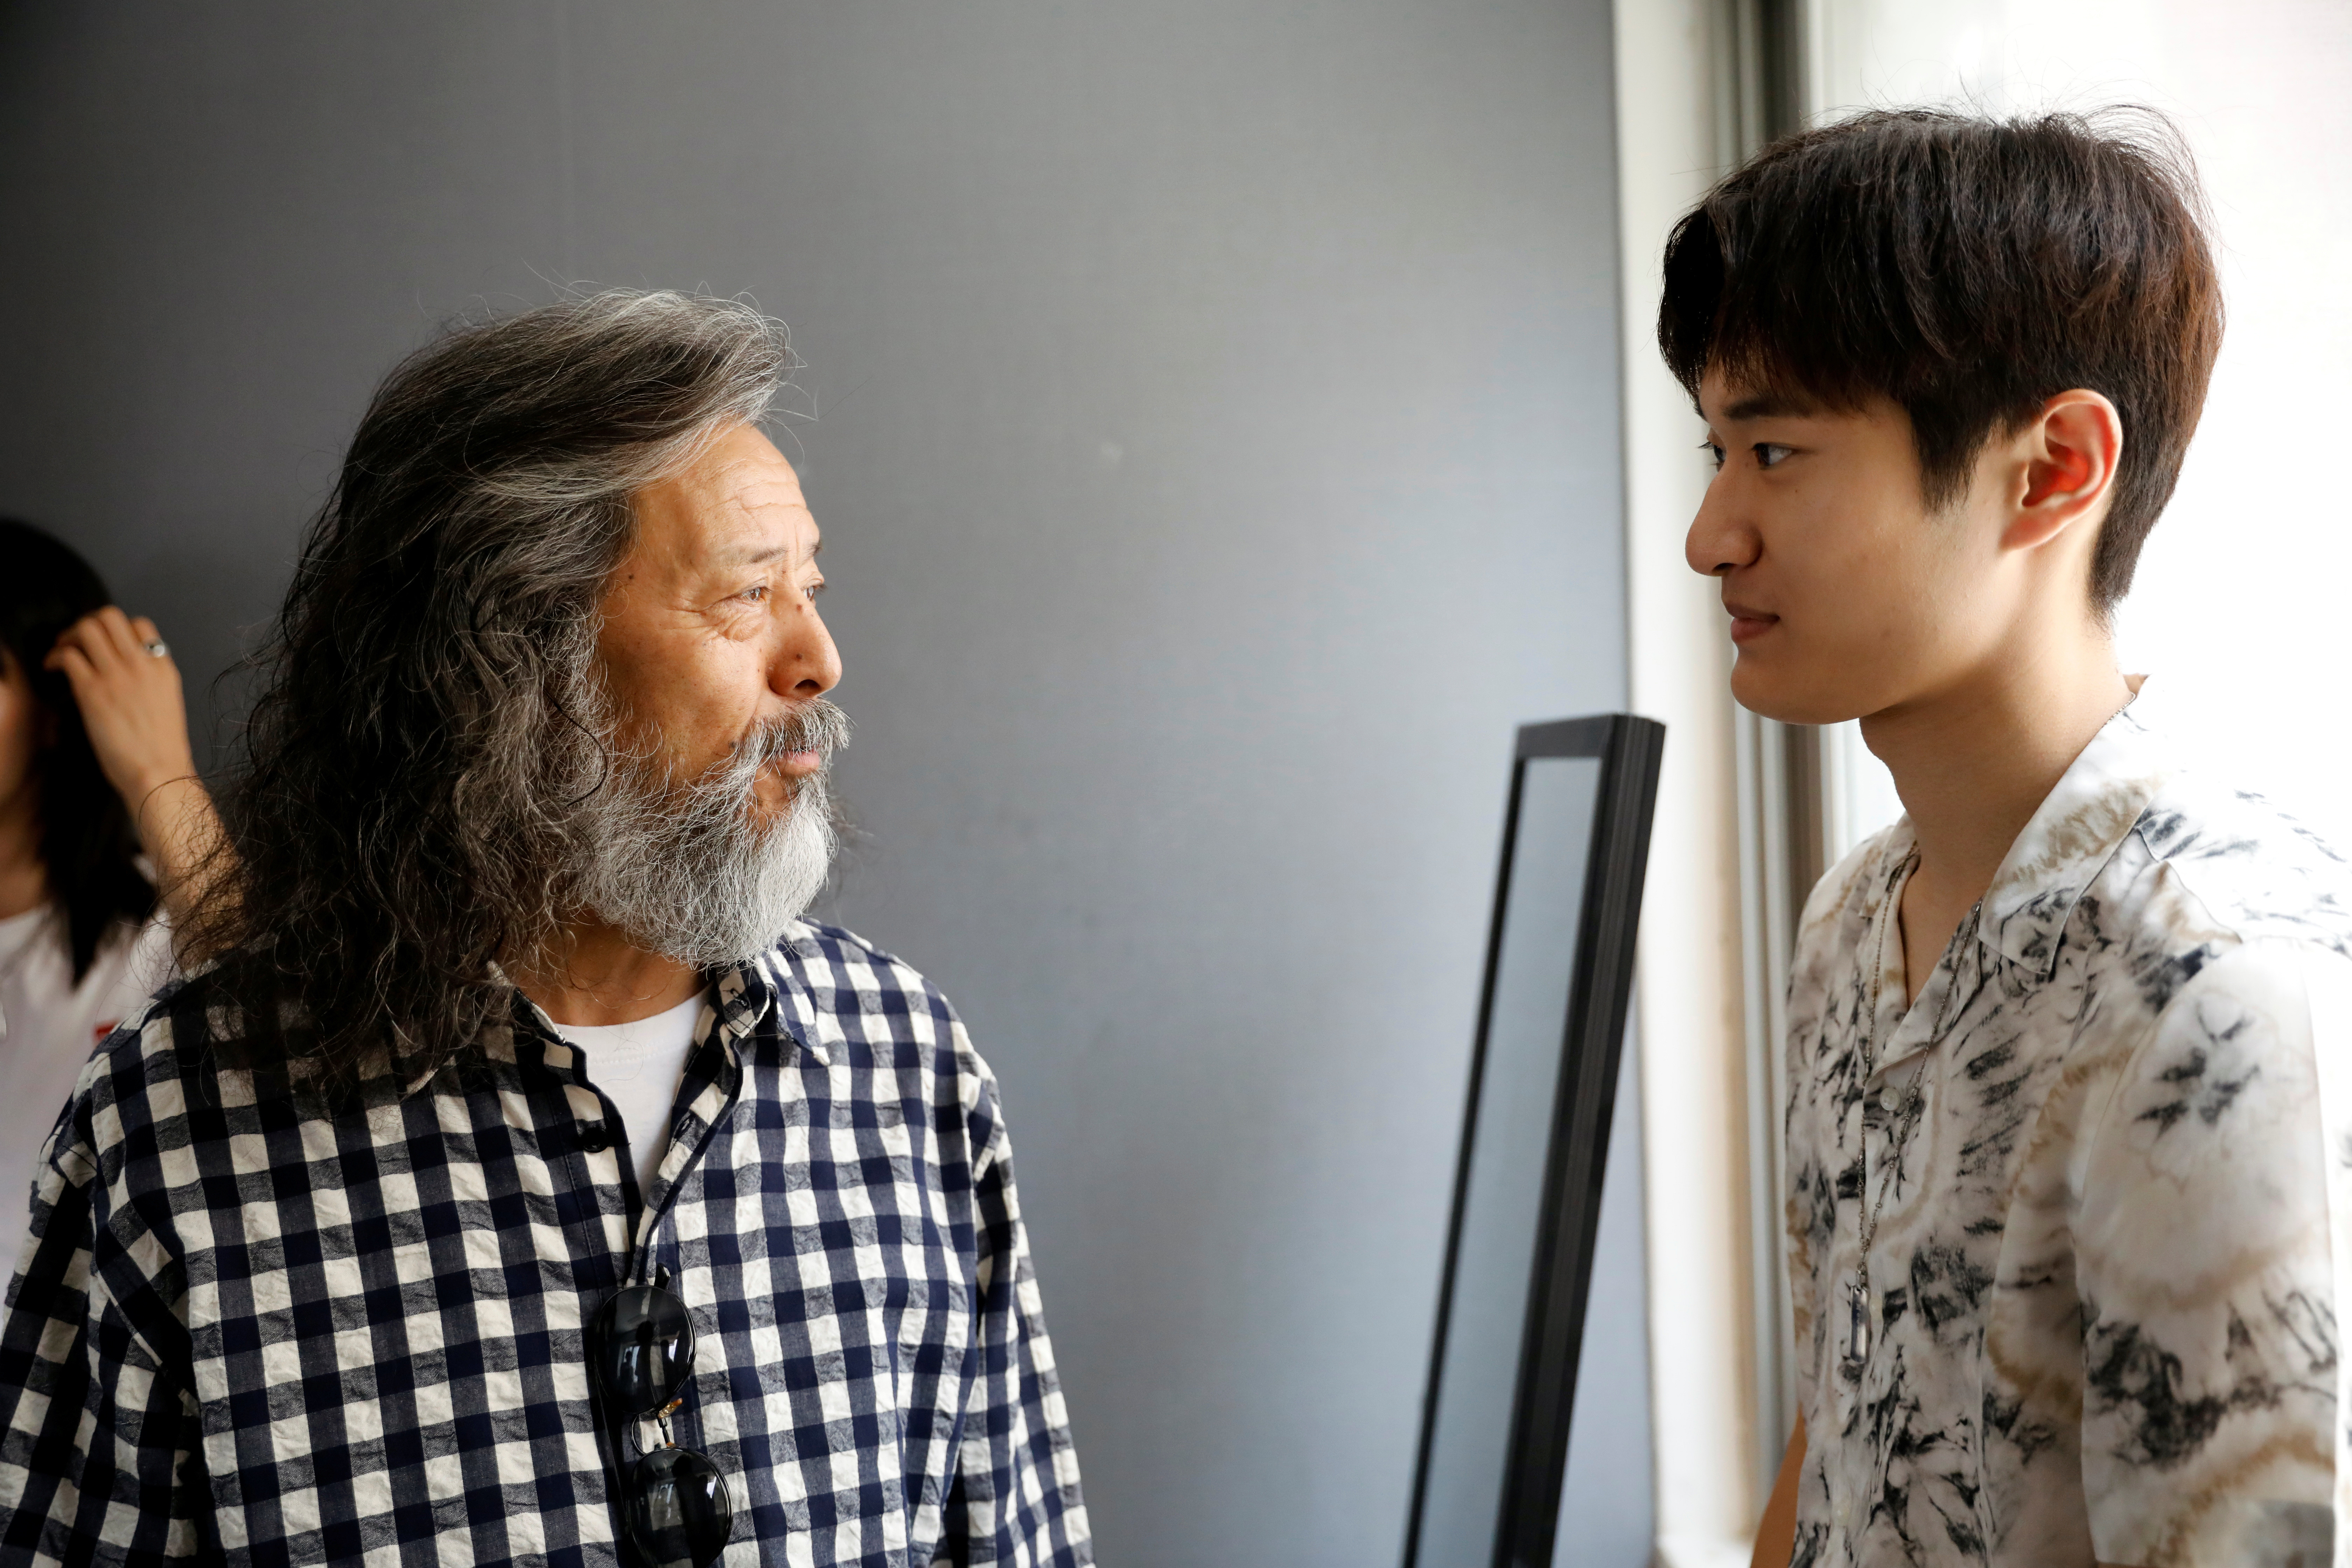 A South Korean senior model Kim Chil-doo, 65-years-old, talks with a younger model in Seoul, South Korea